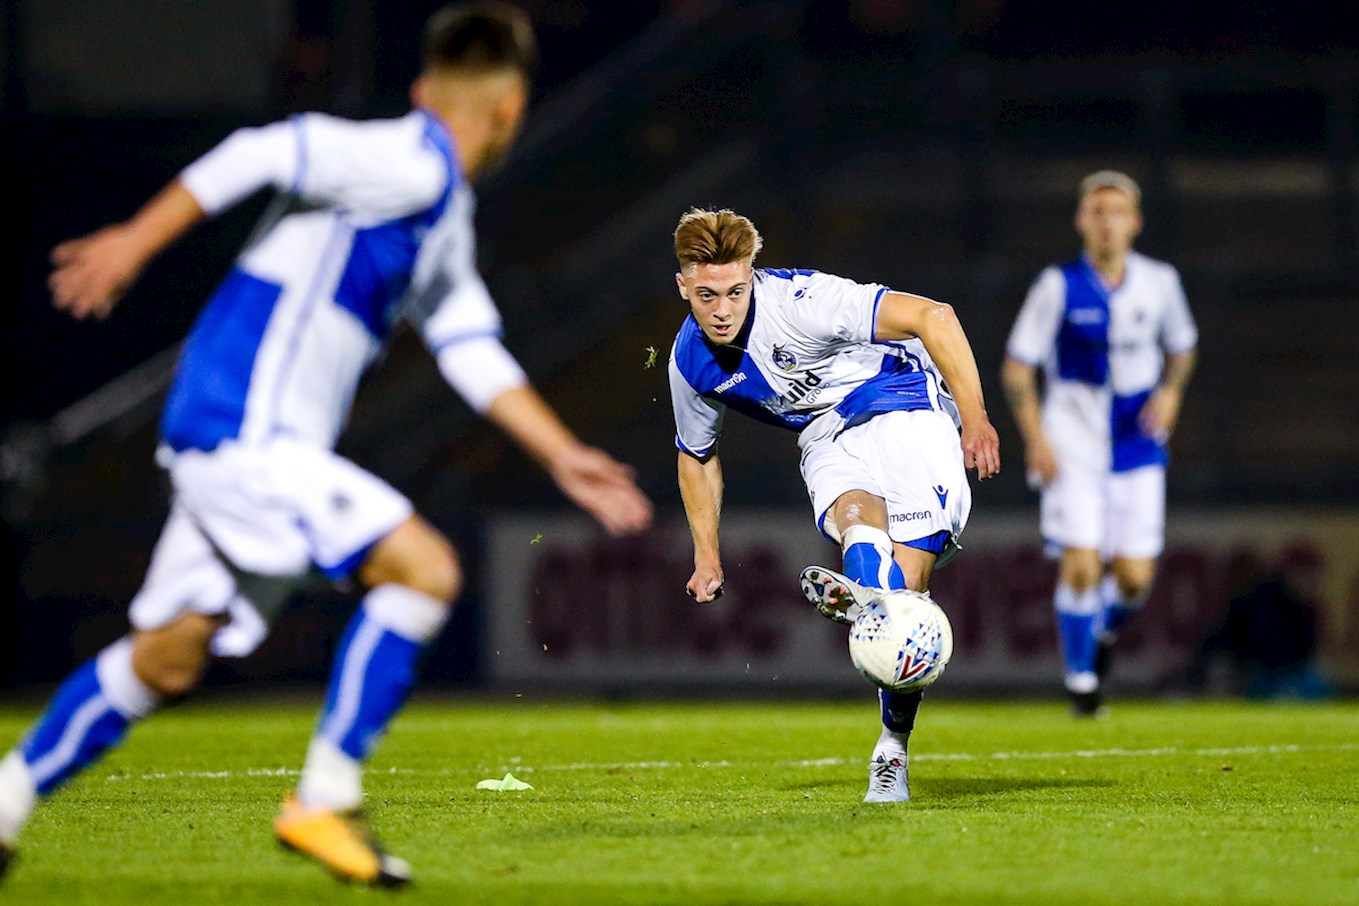 1c73f8929fcaca Rovers Progress in FA Youth Cup - News - Bristol Rovers